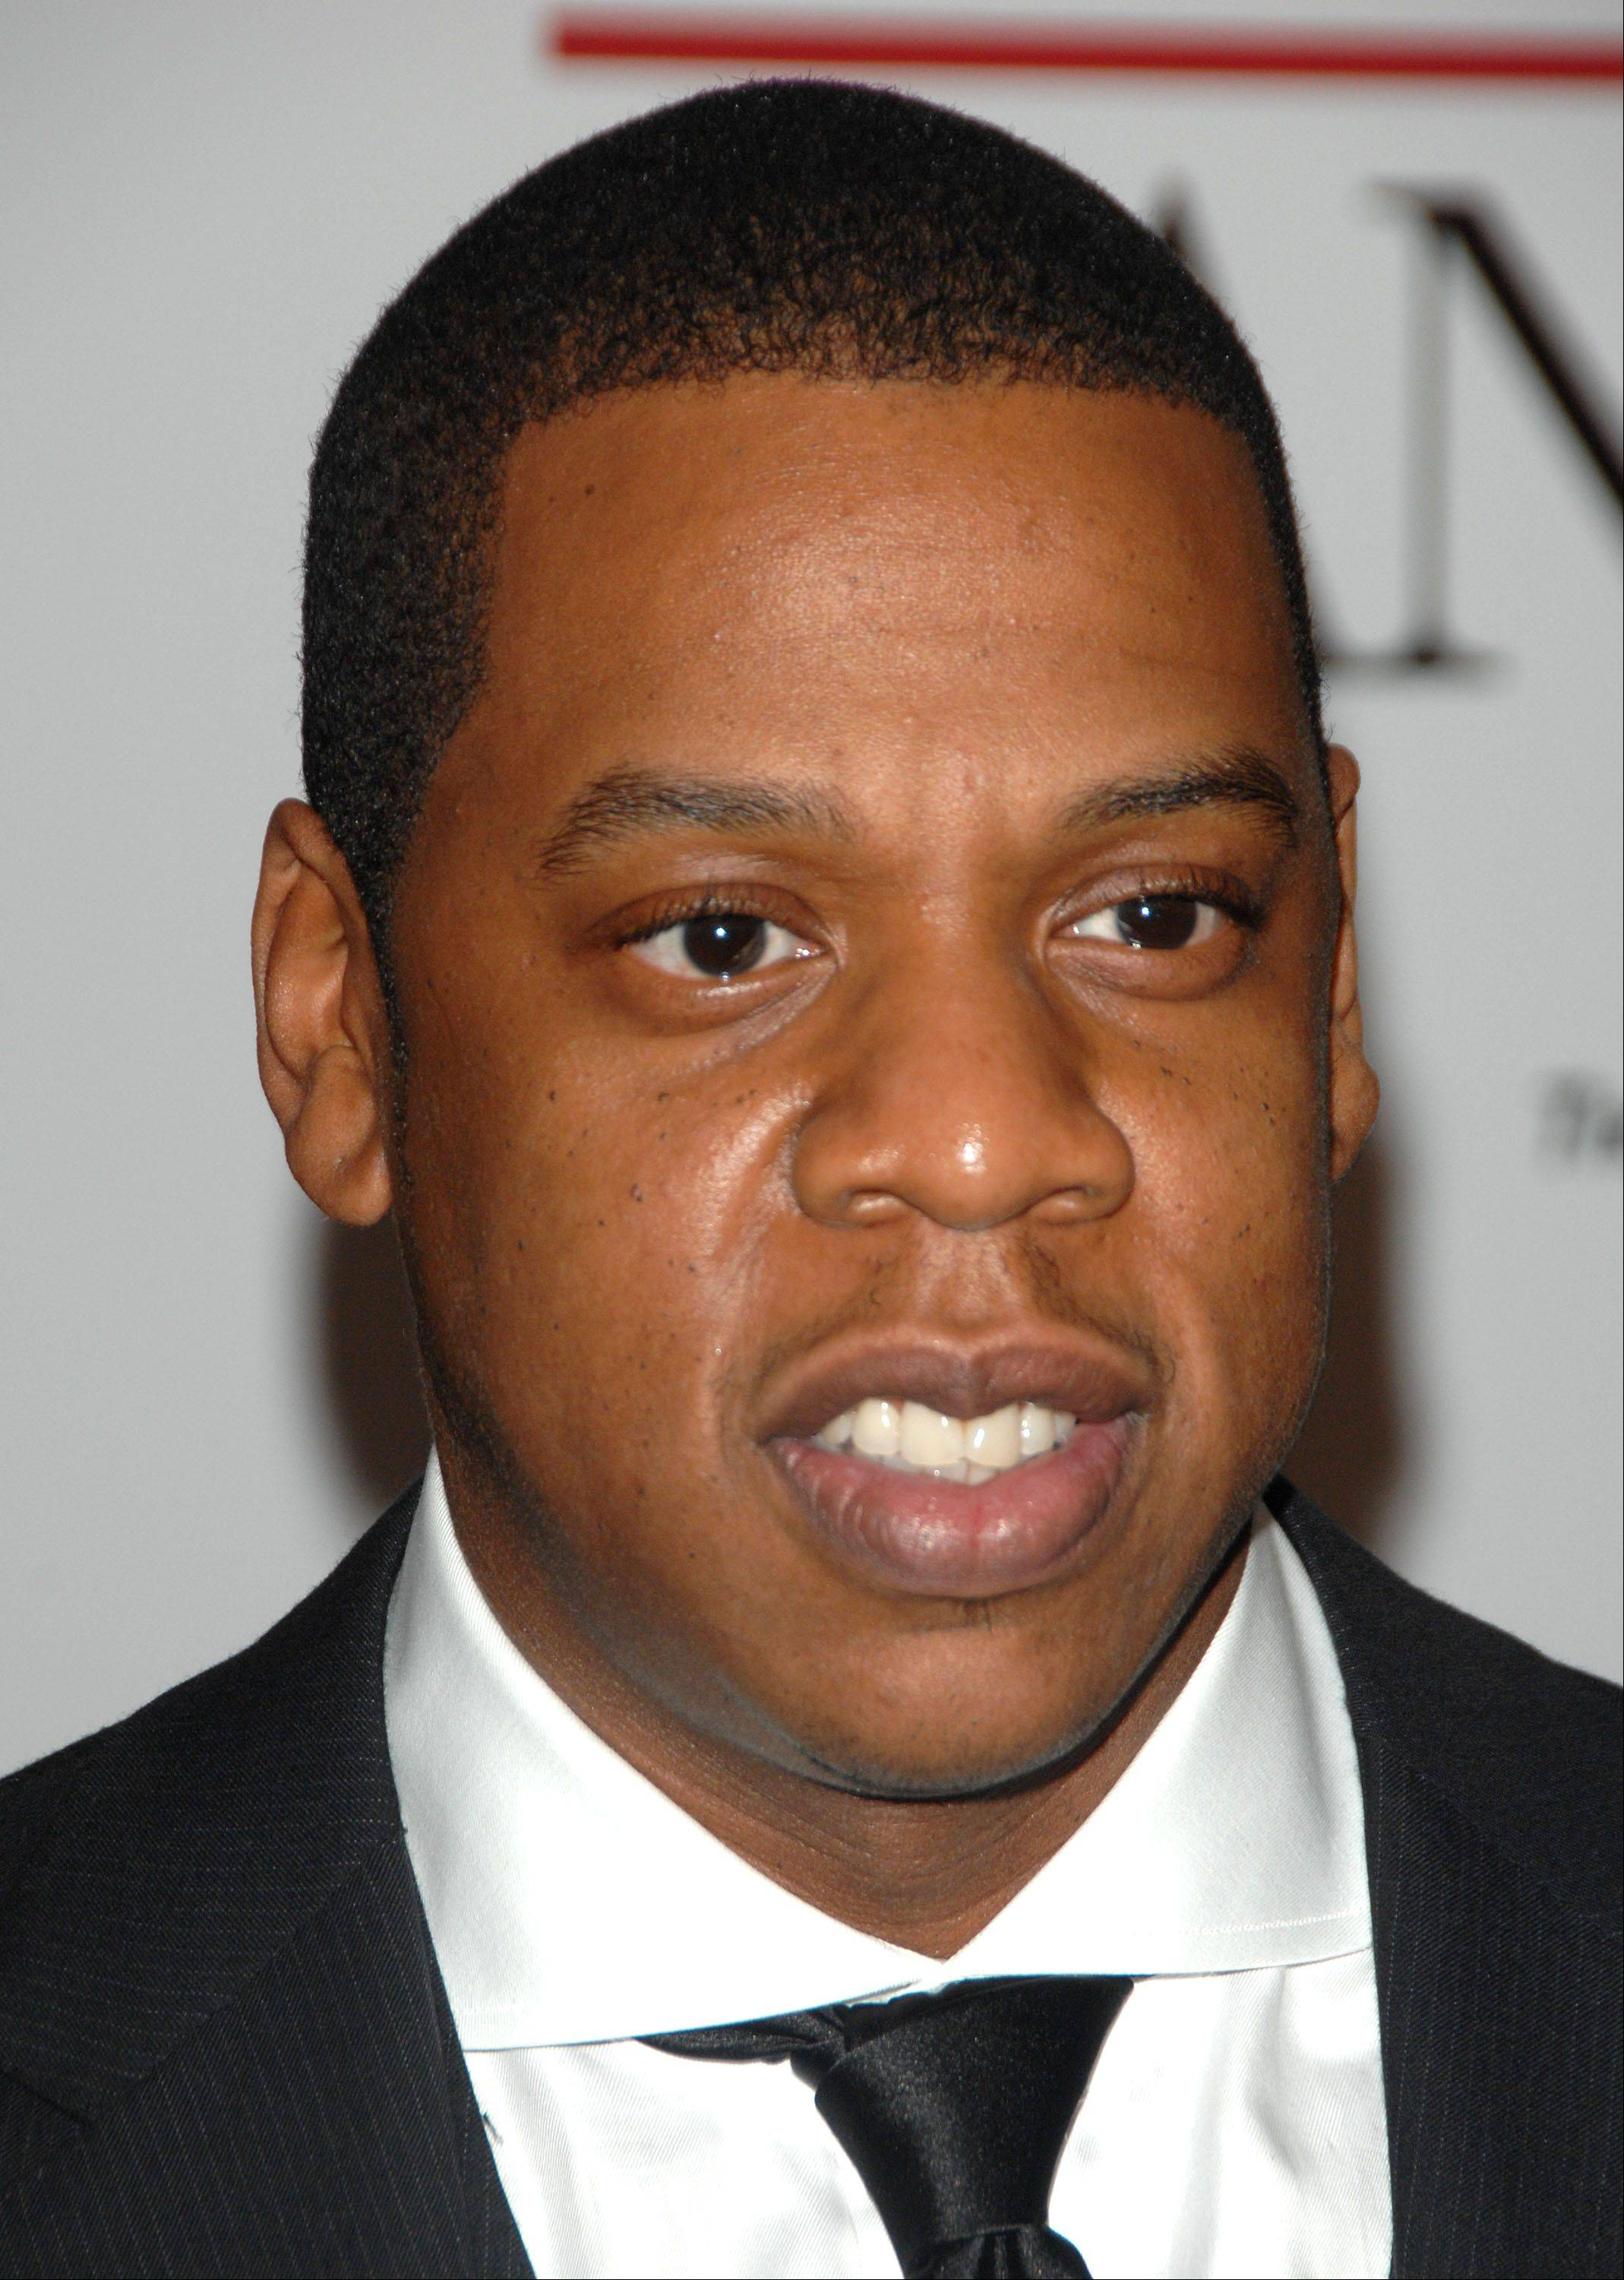 Jay-Z is friendly with a number of sports superstars and could quickly make Roc Nation a force in the agency field.